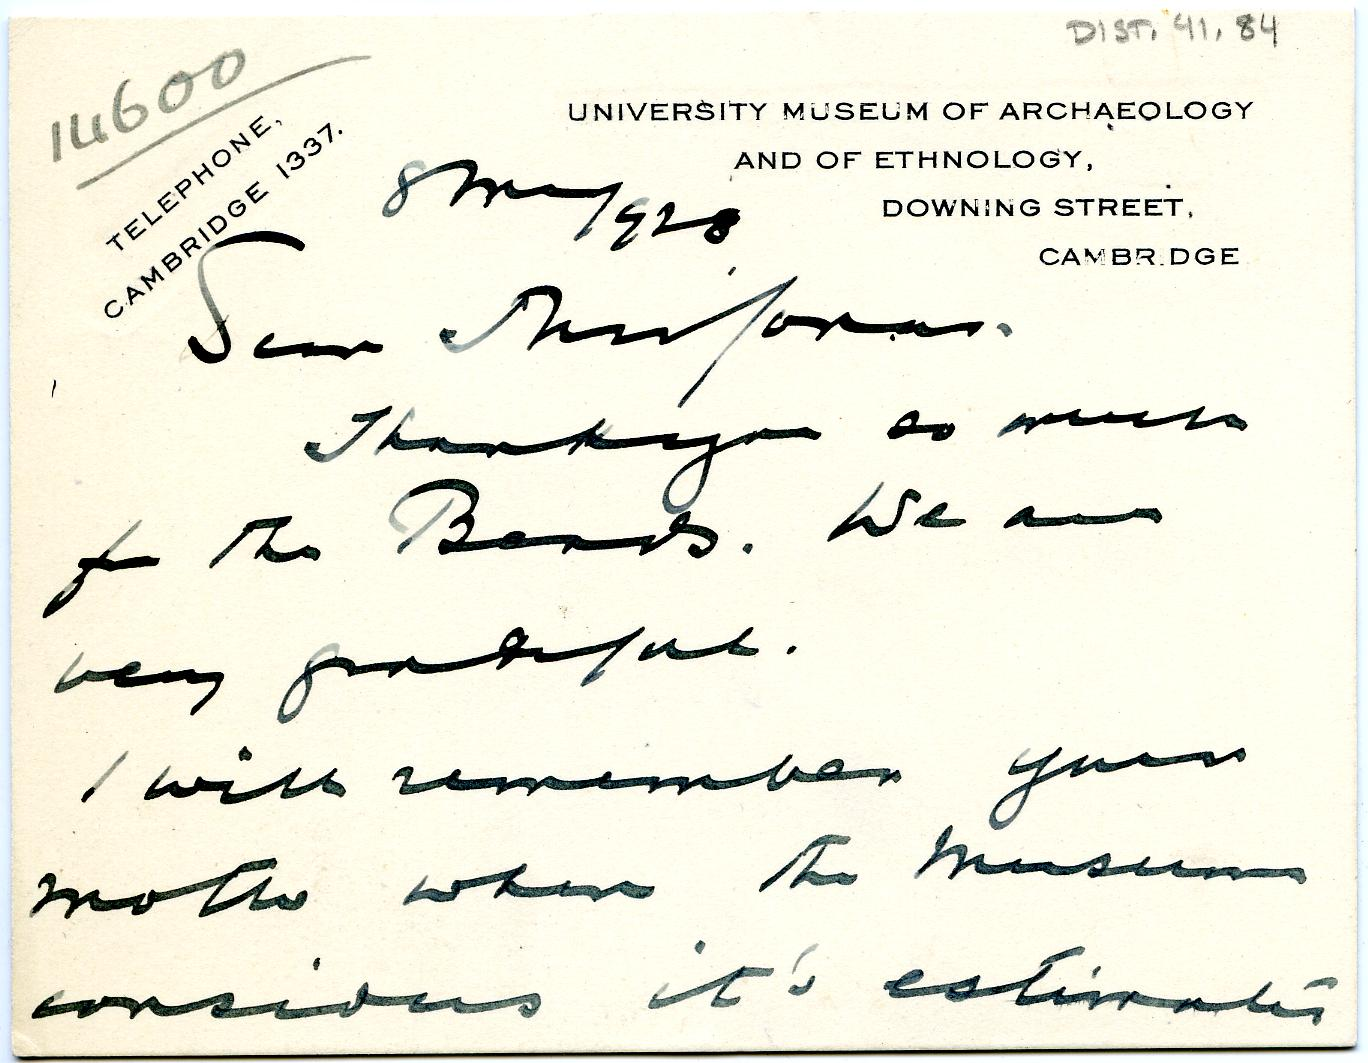 1922-76 Miscellaneous correspondence with museums DIST.41.84a